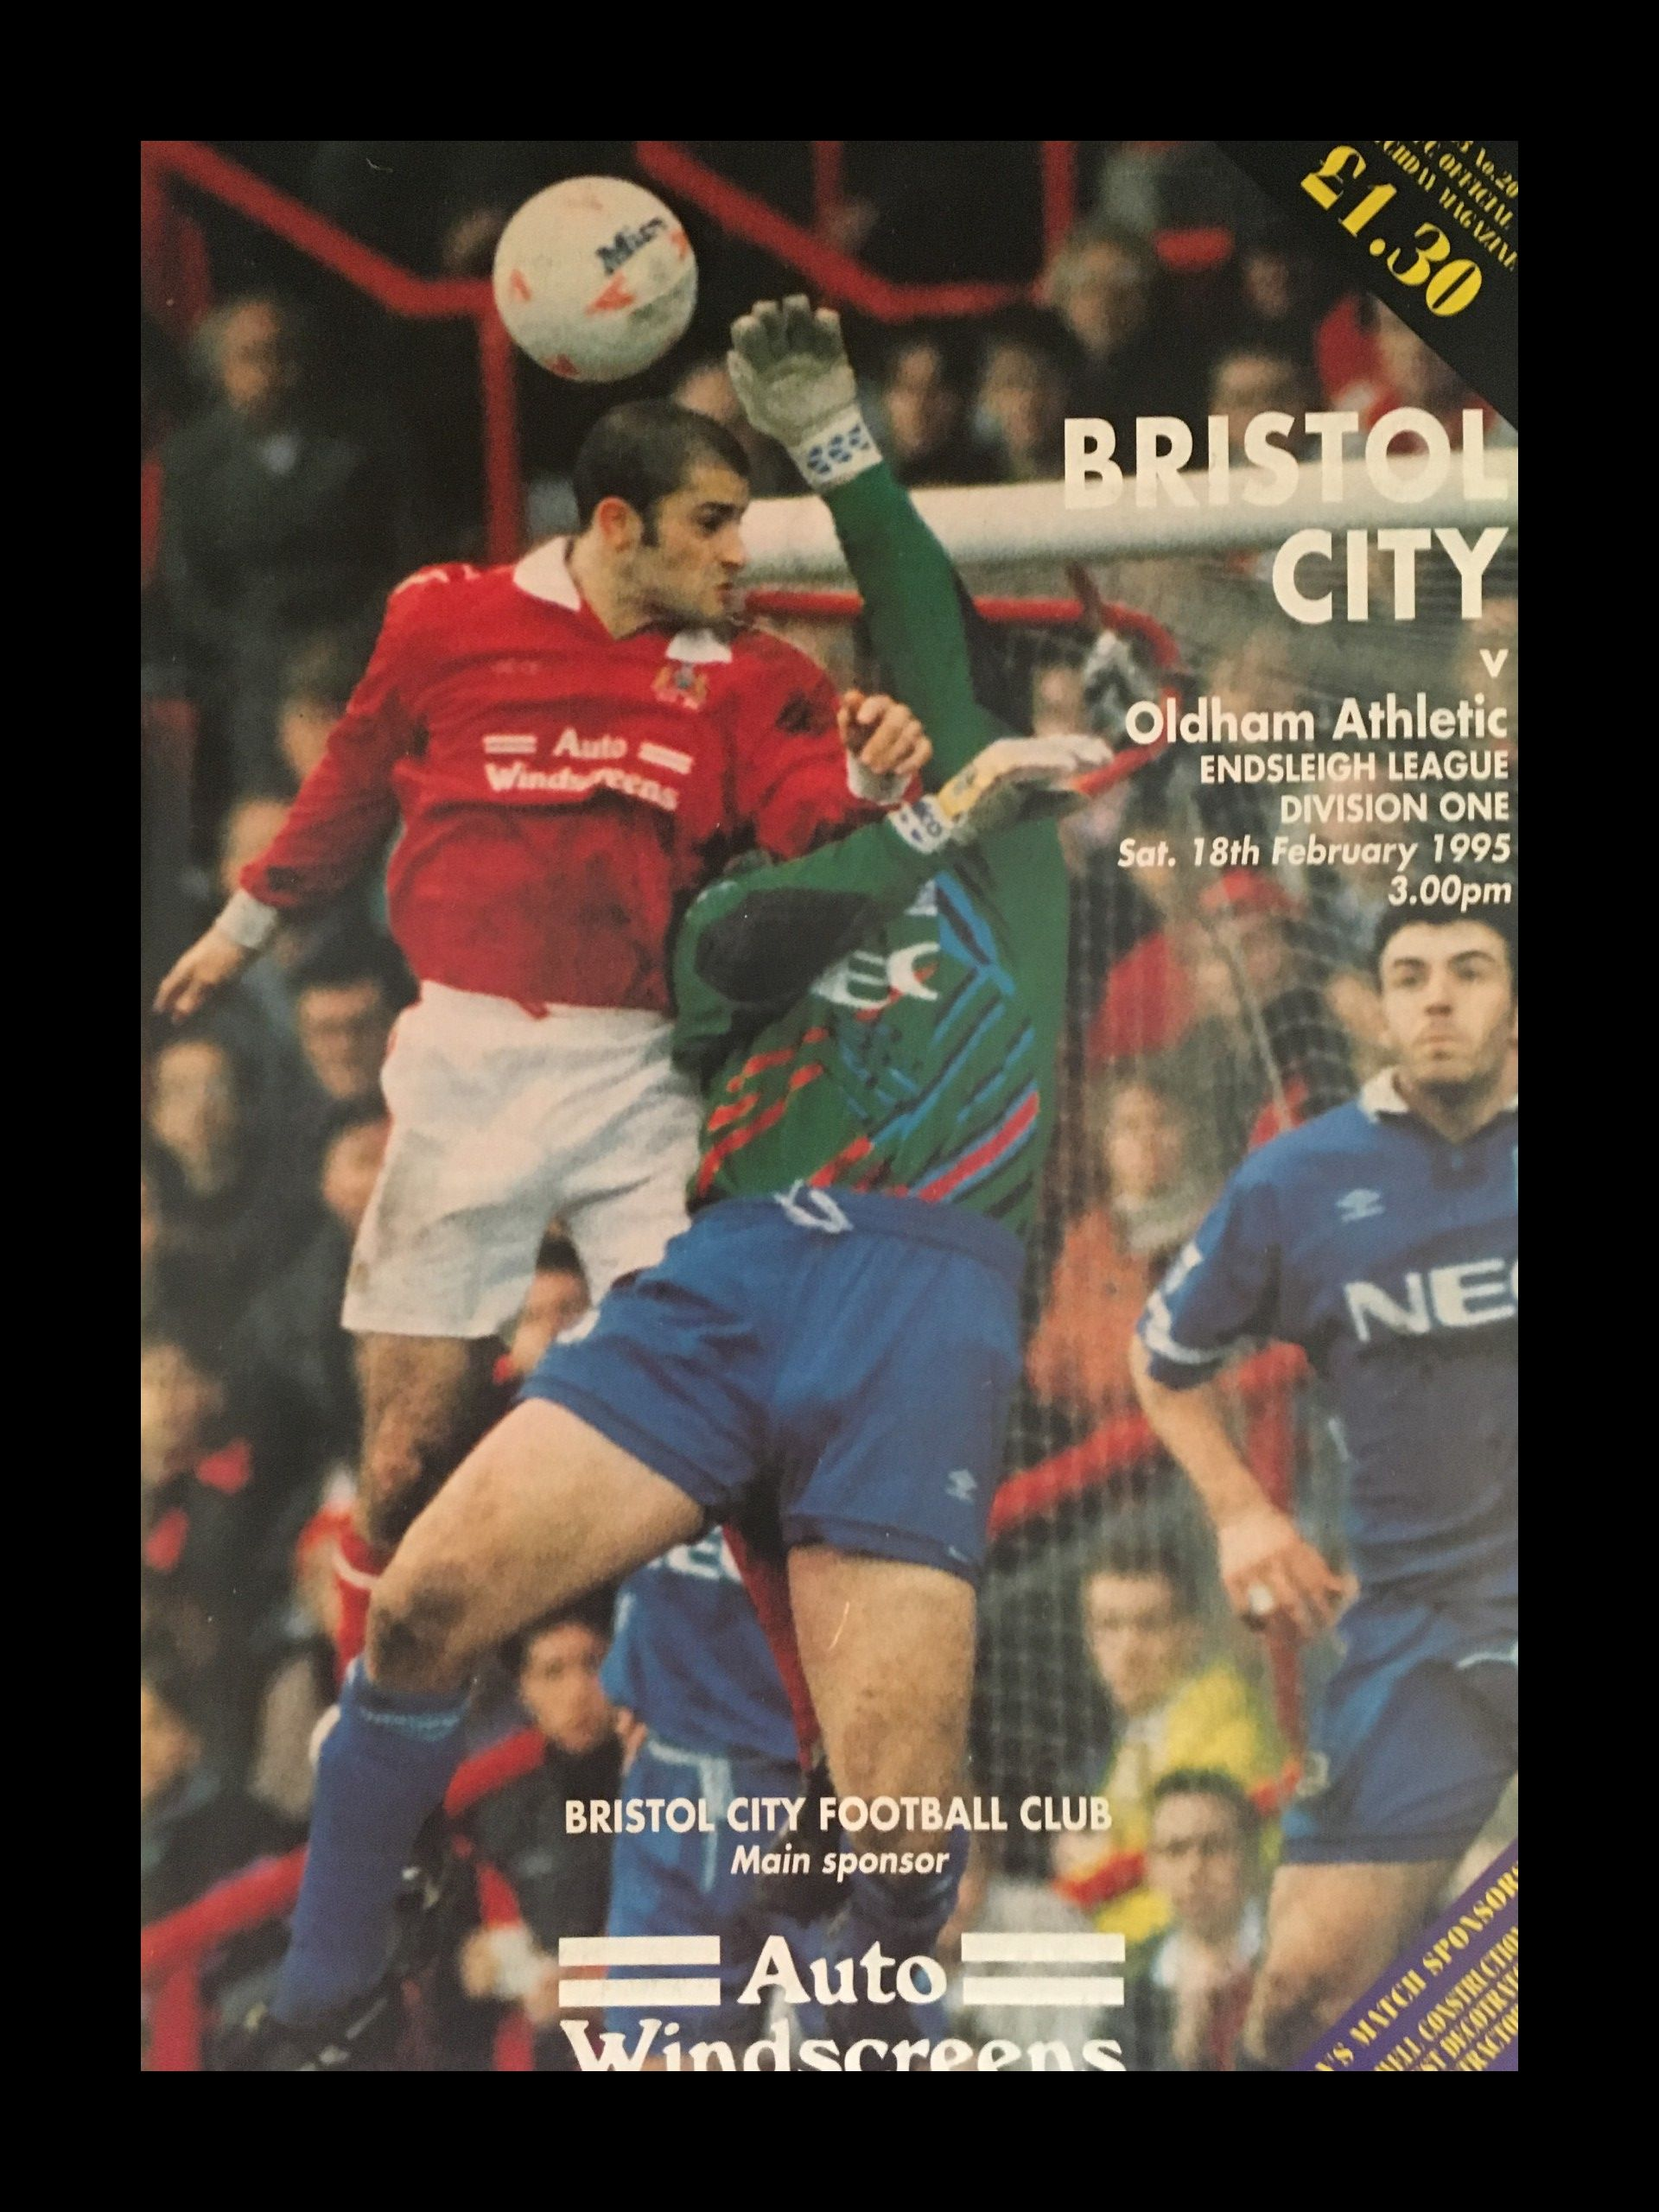 Bristol City v Oldham Athletic 18-02-1995 Programme